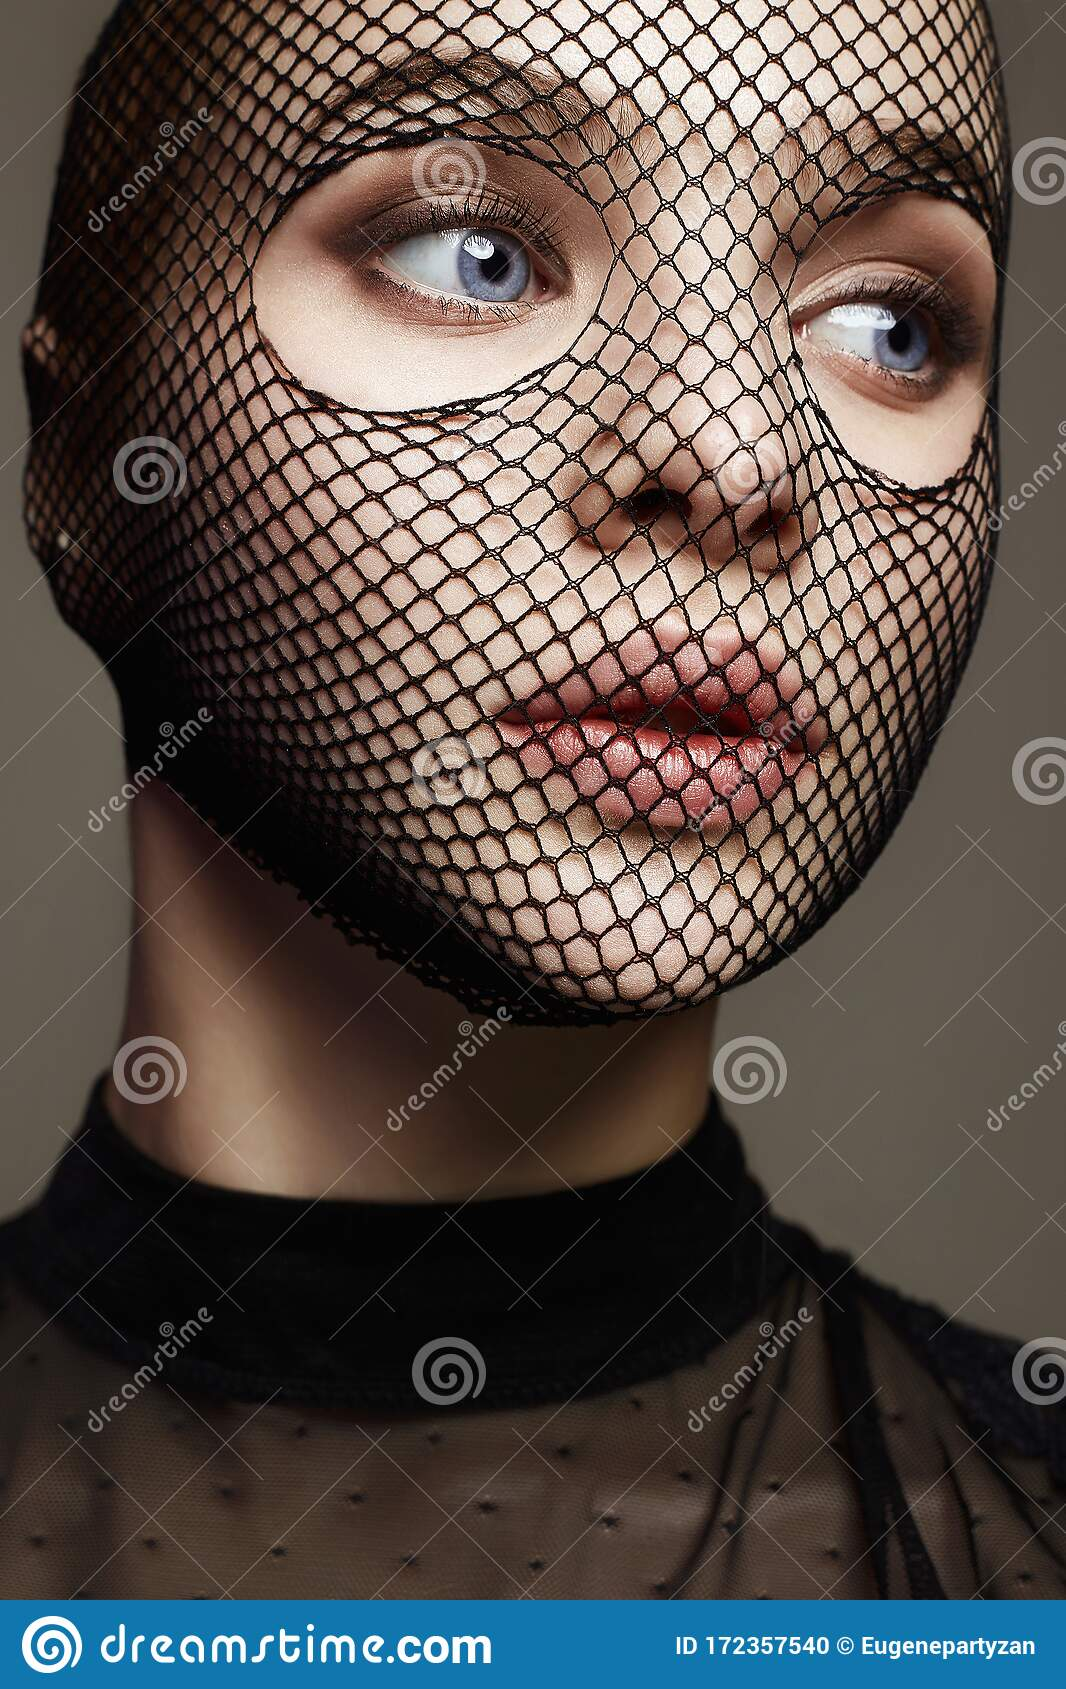 Beautiful Woman In Net On Her Face. Girl In Mask Stock Photo - Image of  passion, lovely: 172357540